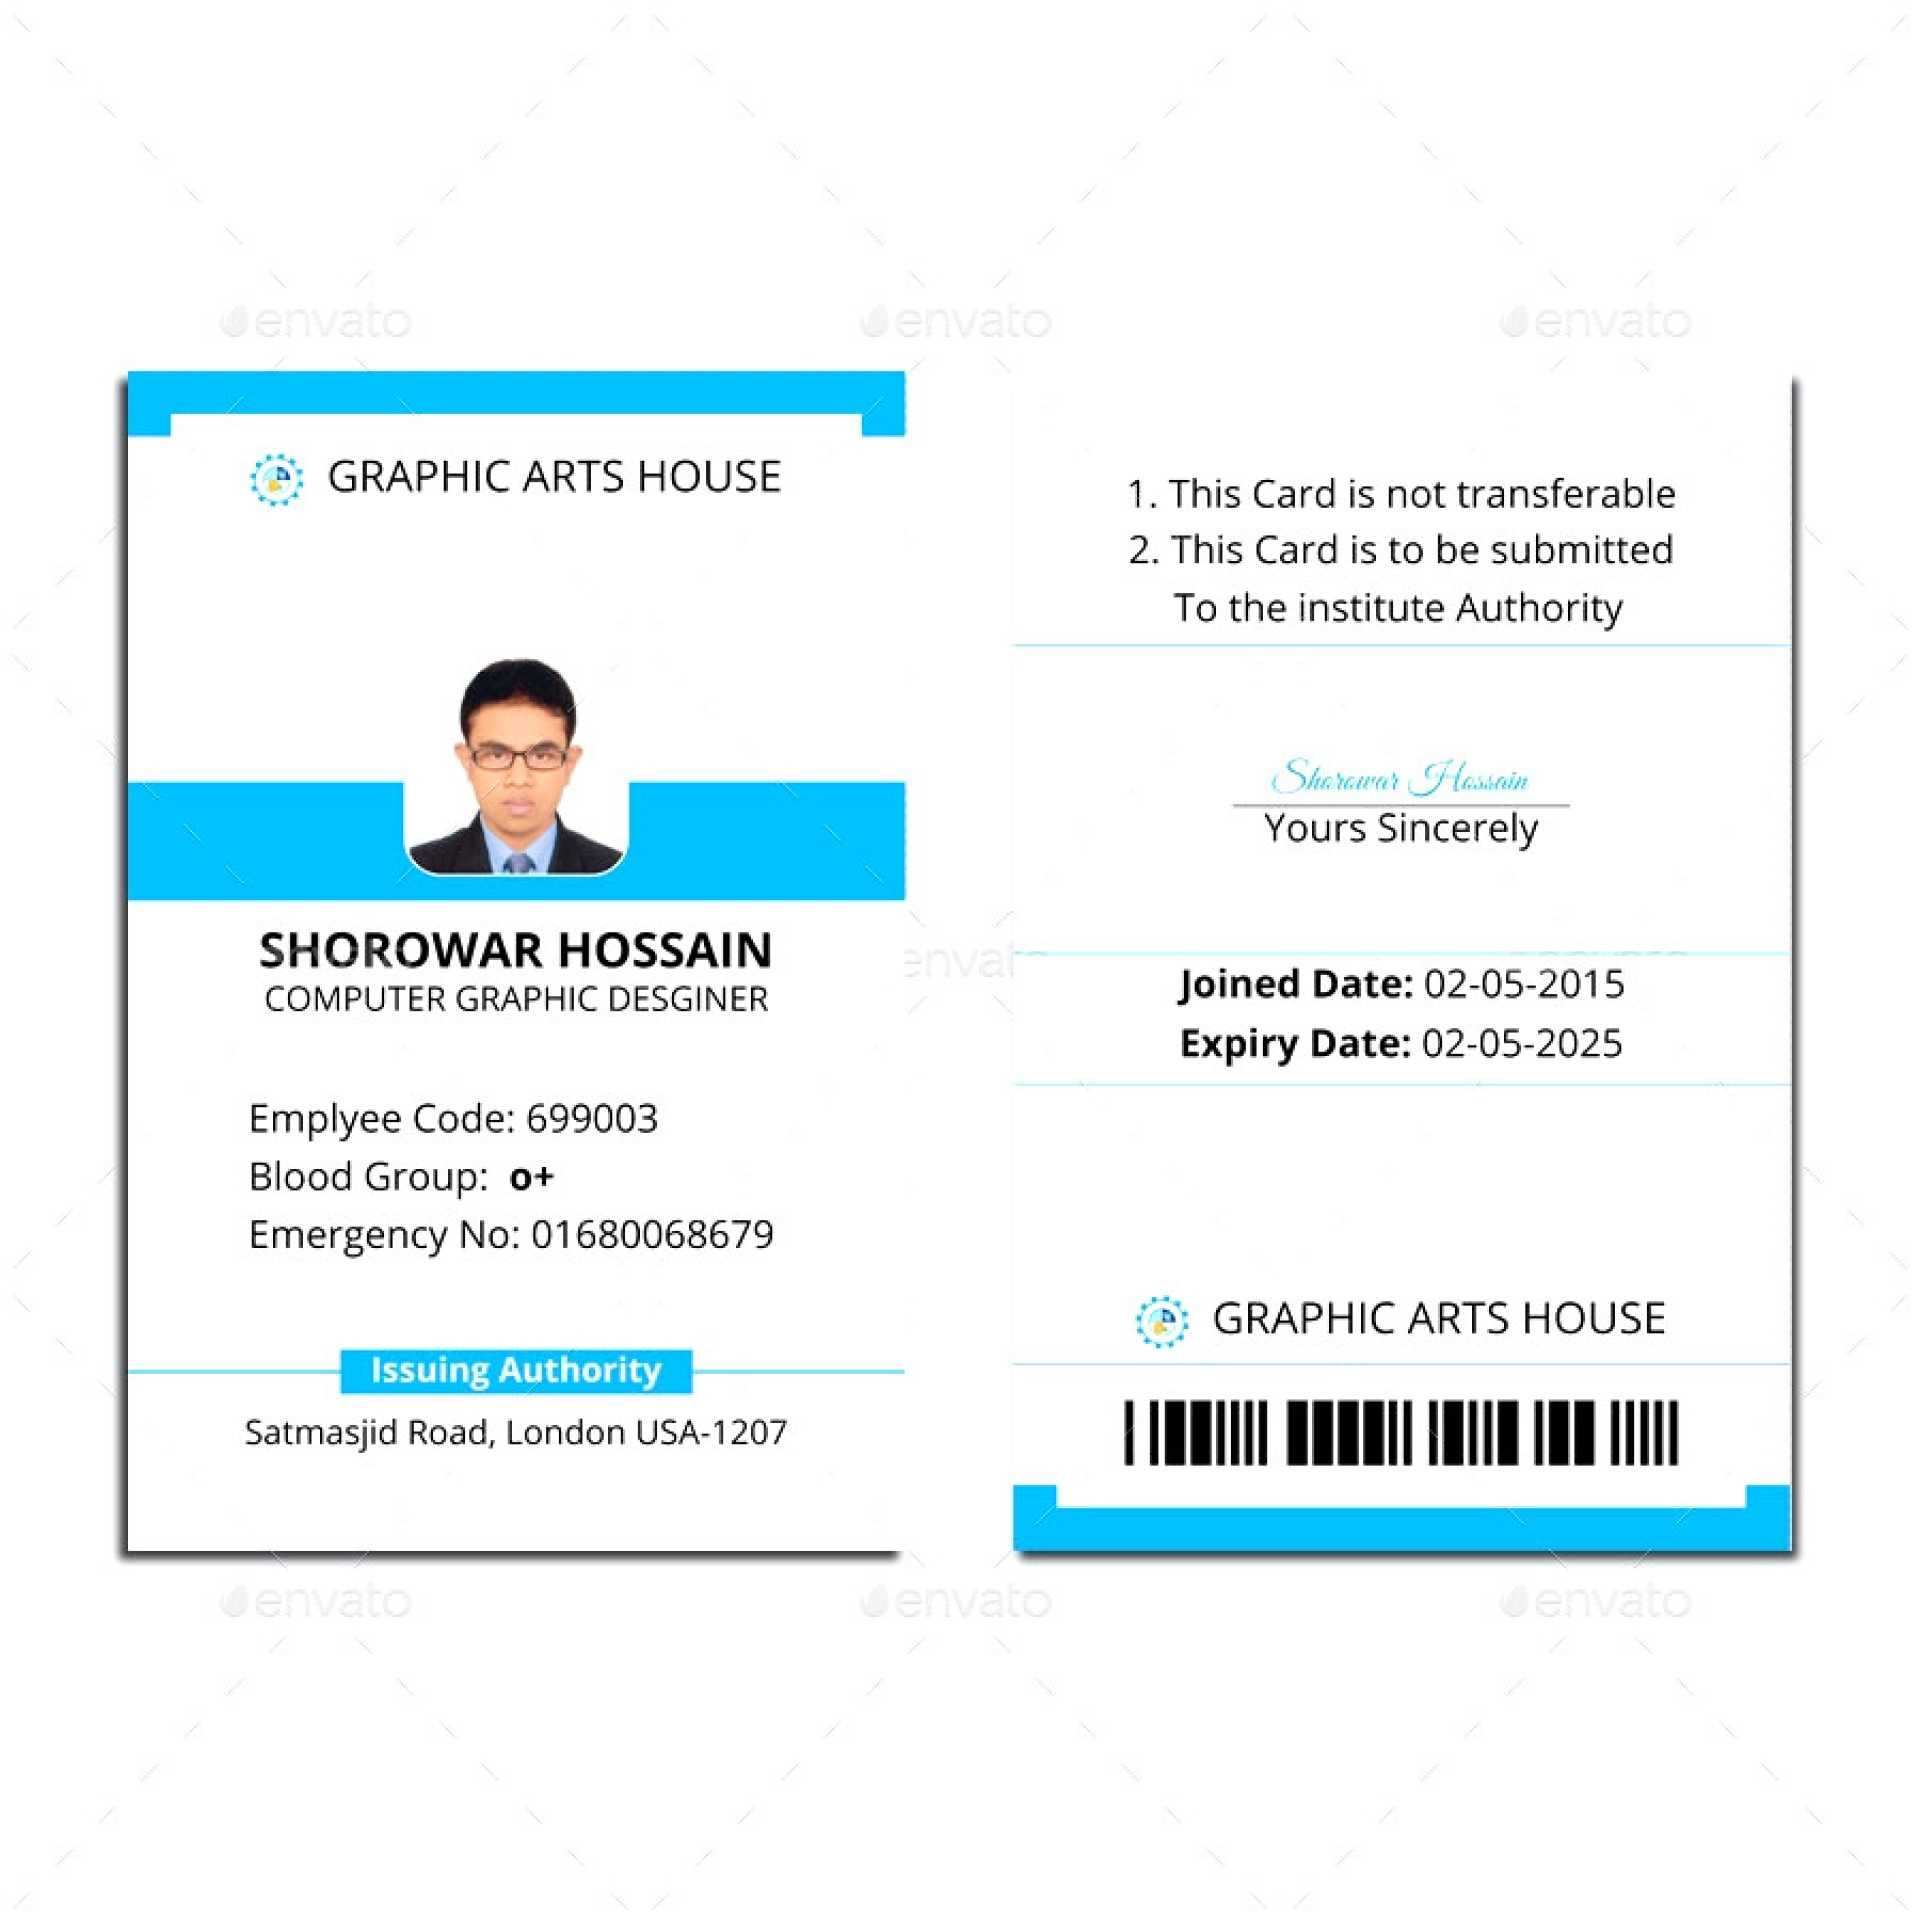 006 Id Card Template Word Ideas 1920X1920 Employee Microsoft Throughout Id Card Template Word Free